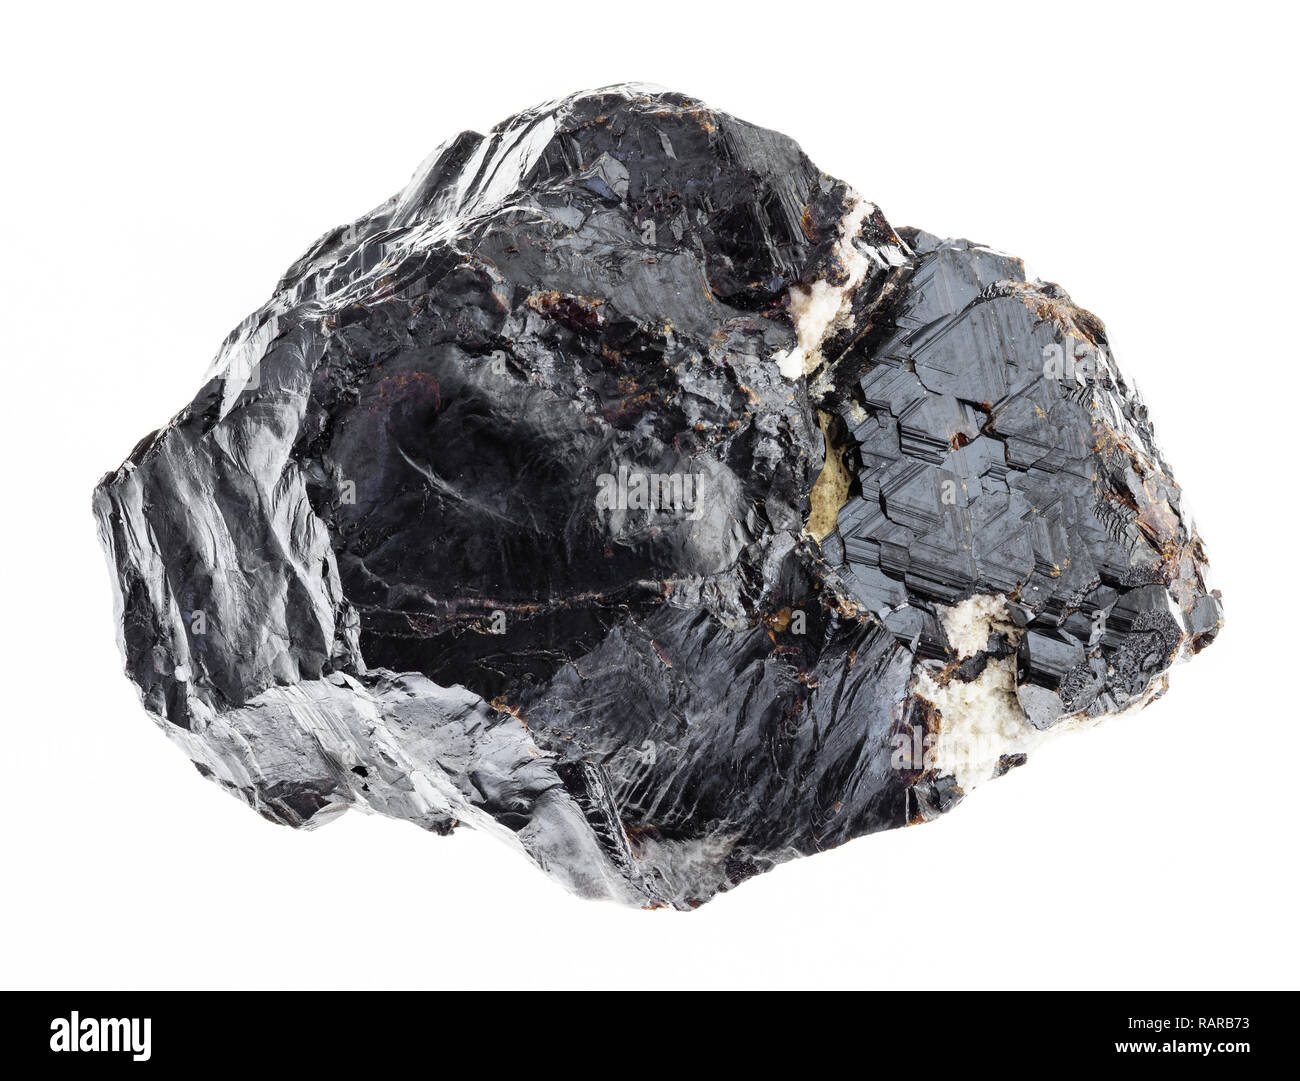 macro photography of natural mineral from geological collection - rough sphalerite (zinc blende) stone on white background - Stock Image